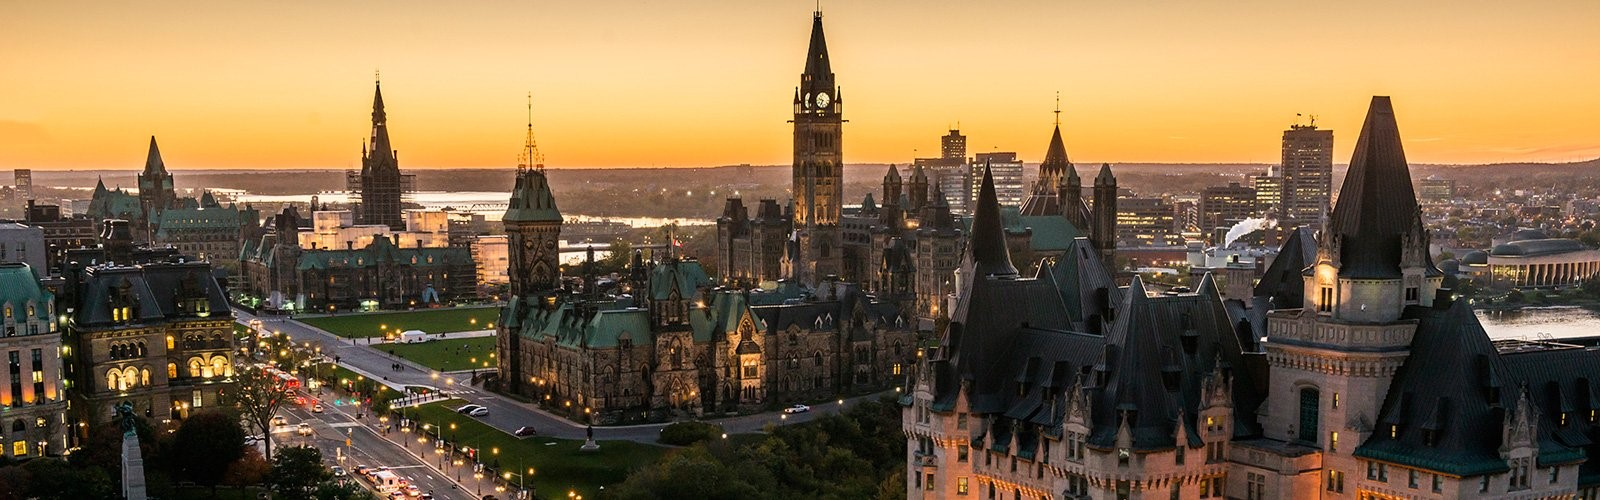 City of Ottawa landscape view of Parlement